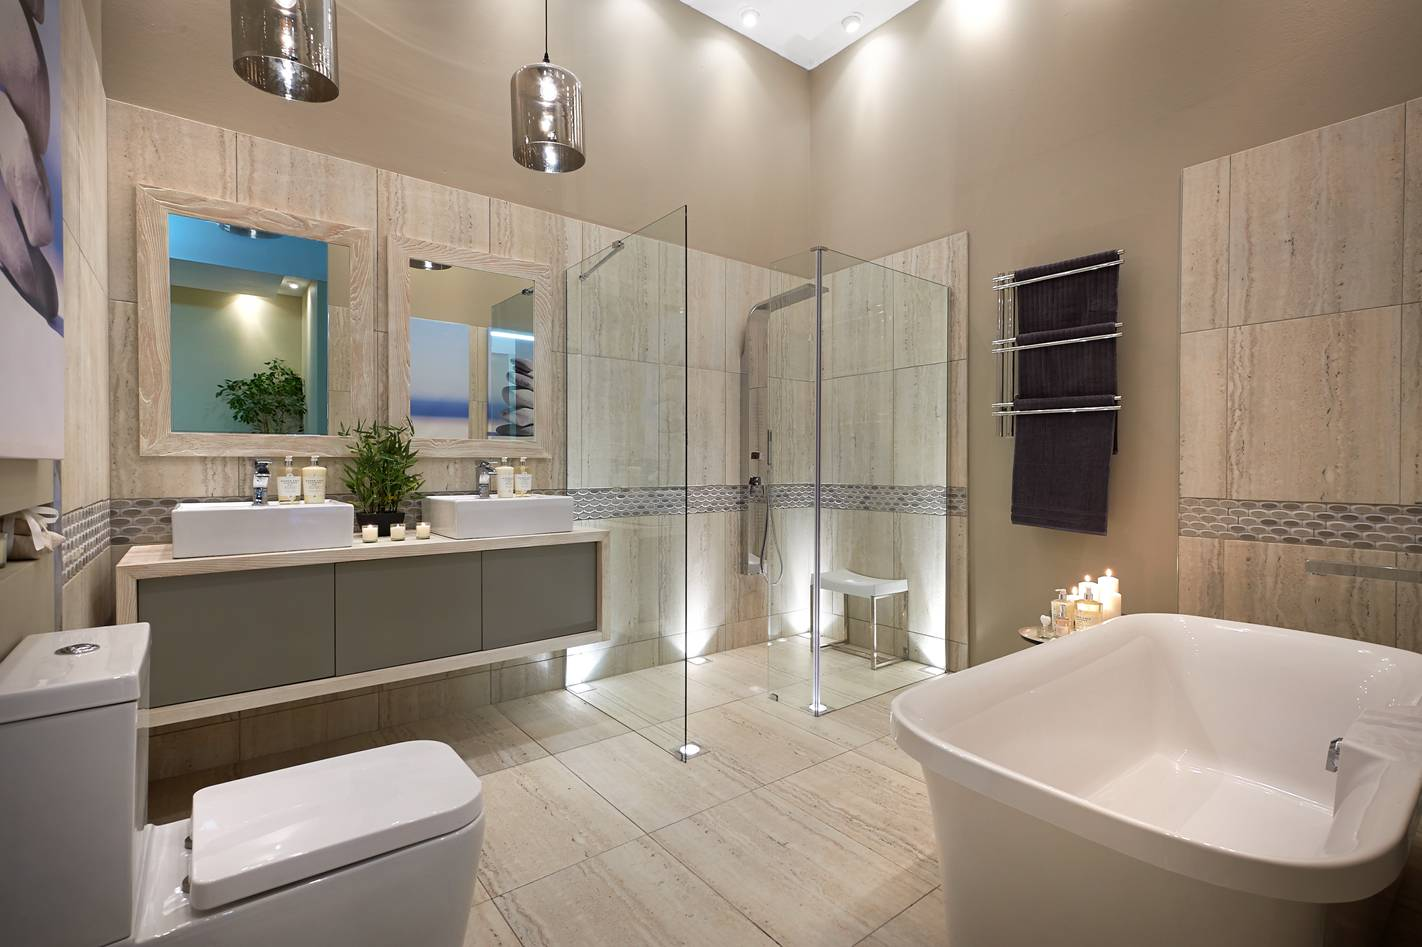 Top design tips for family bathrooms Six bathroom design tips